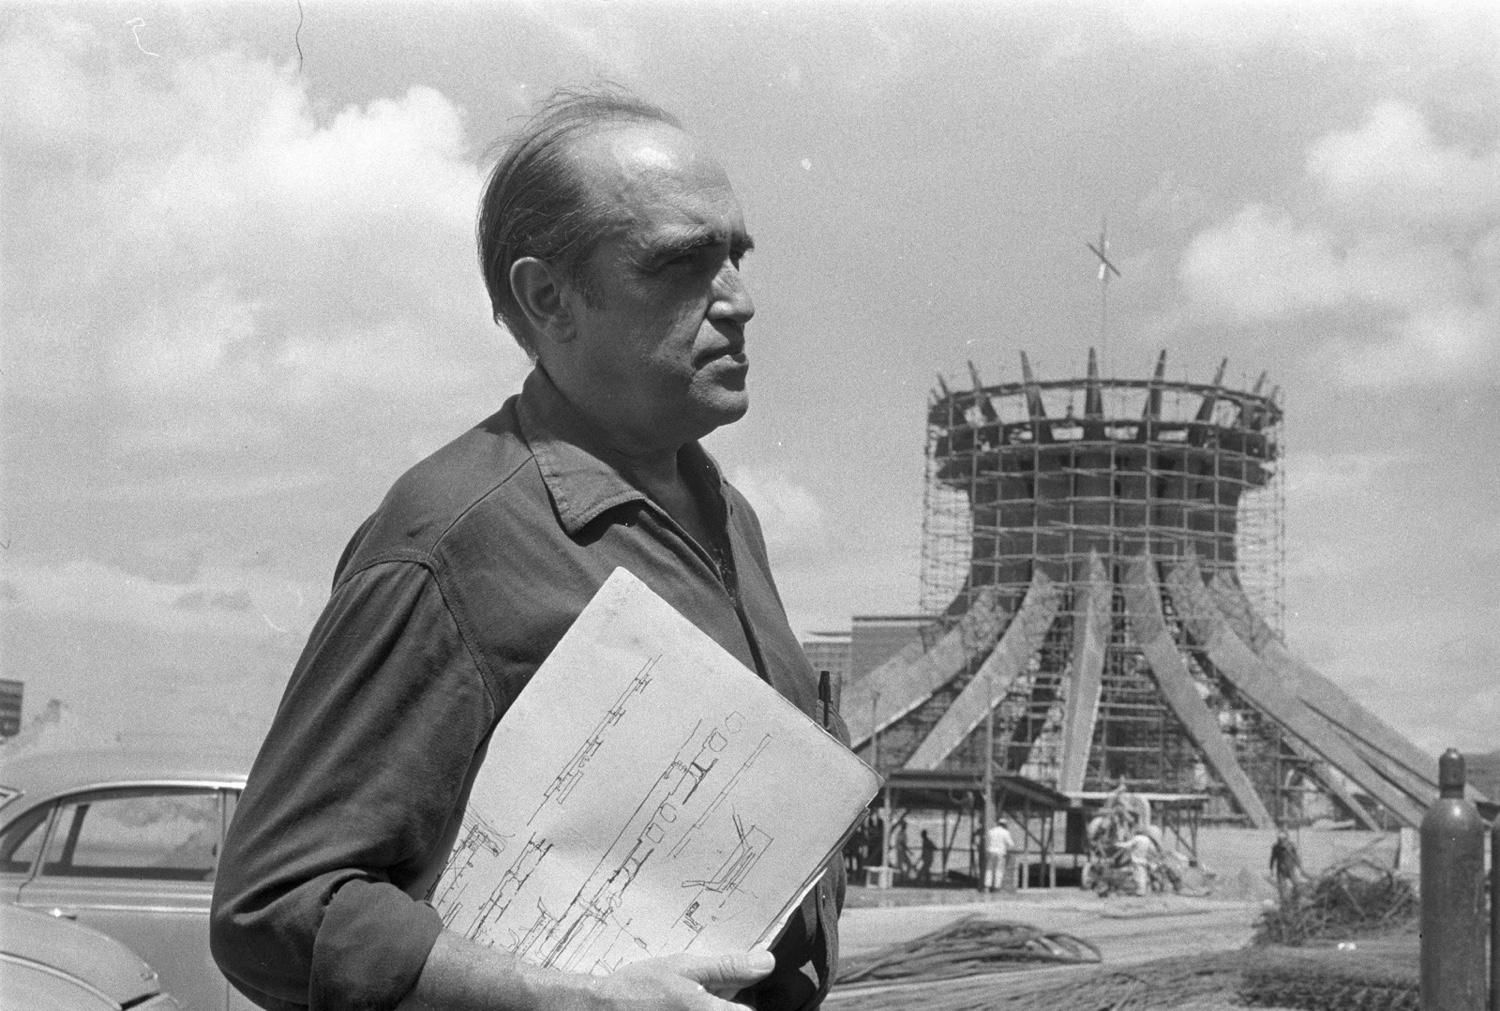 Oscar Niemeyer at the Catedral de Brasília. Photo via CAU/BR.